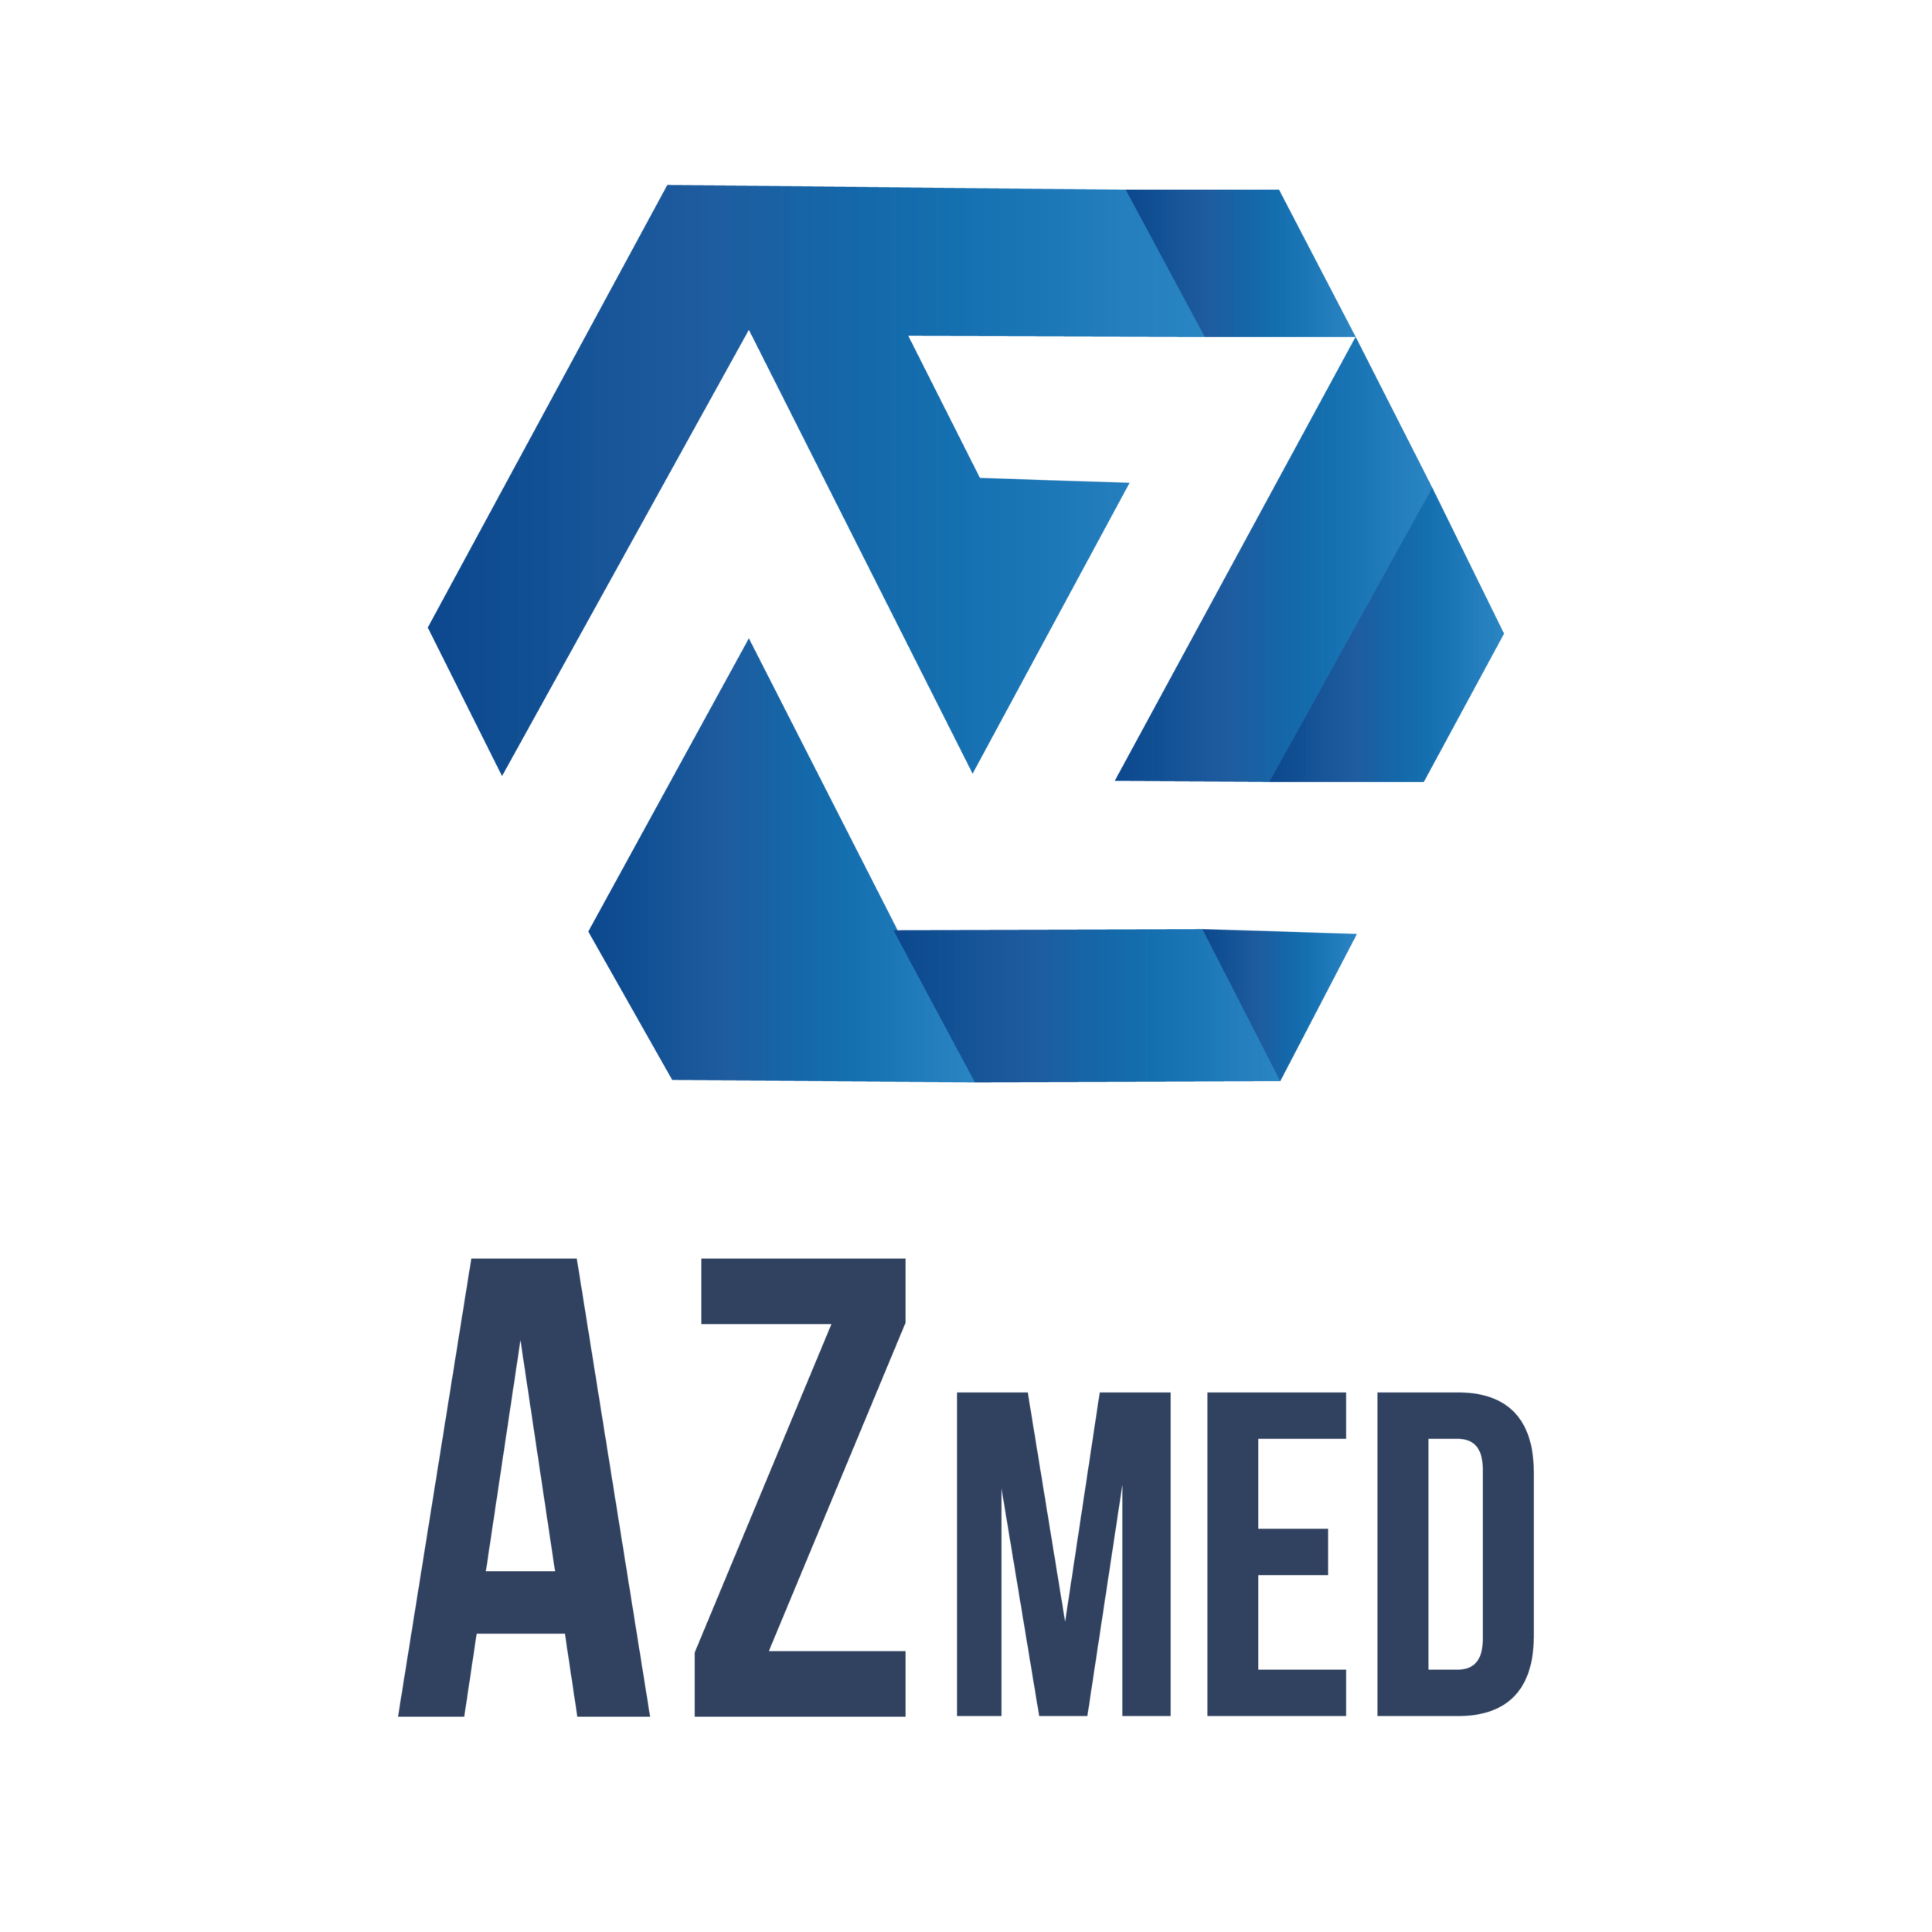 AZmed.png